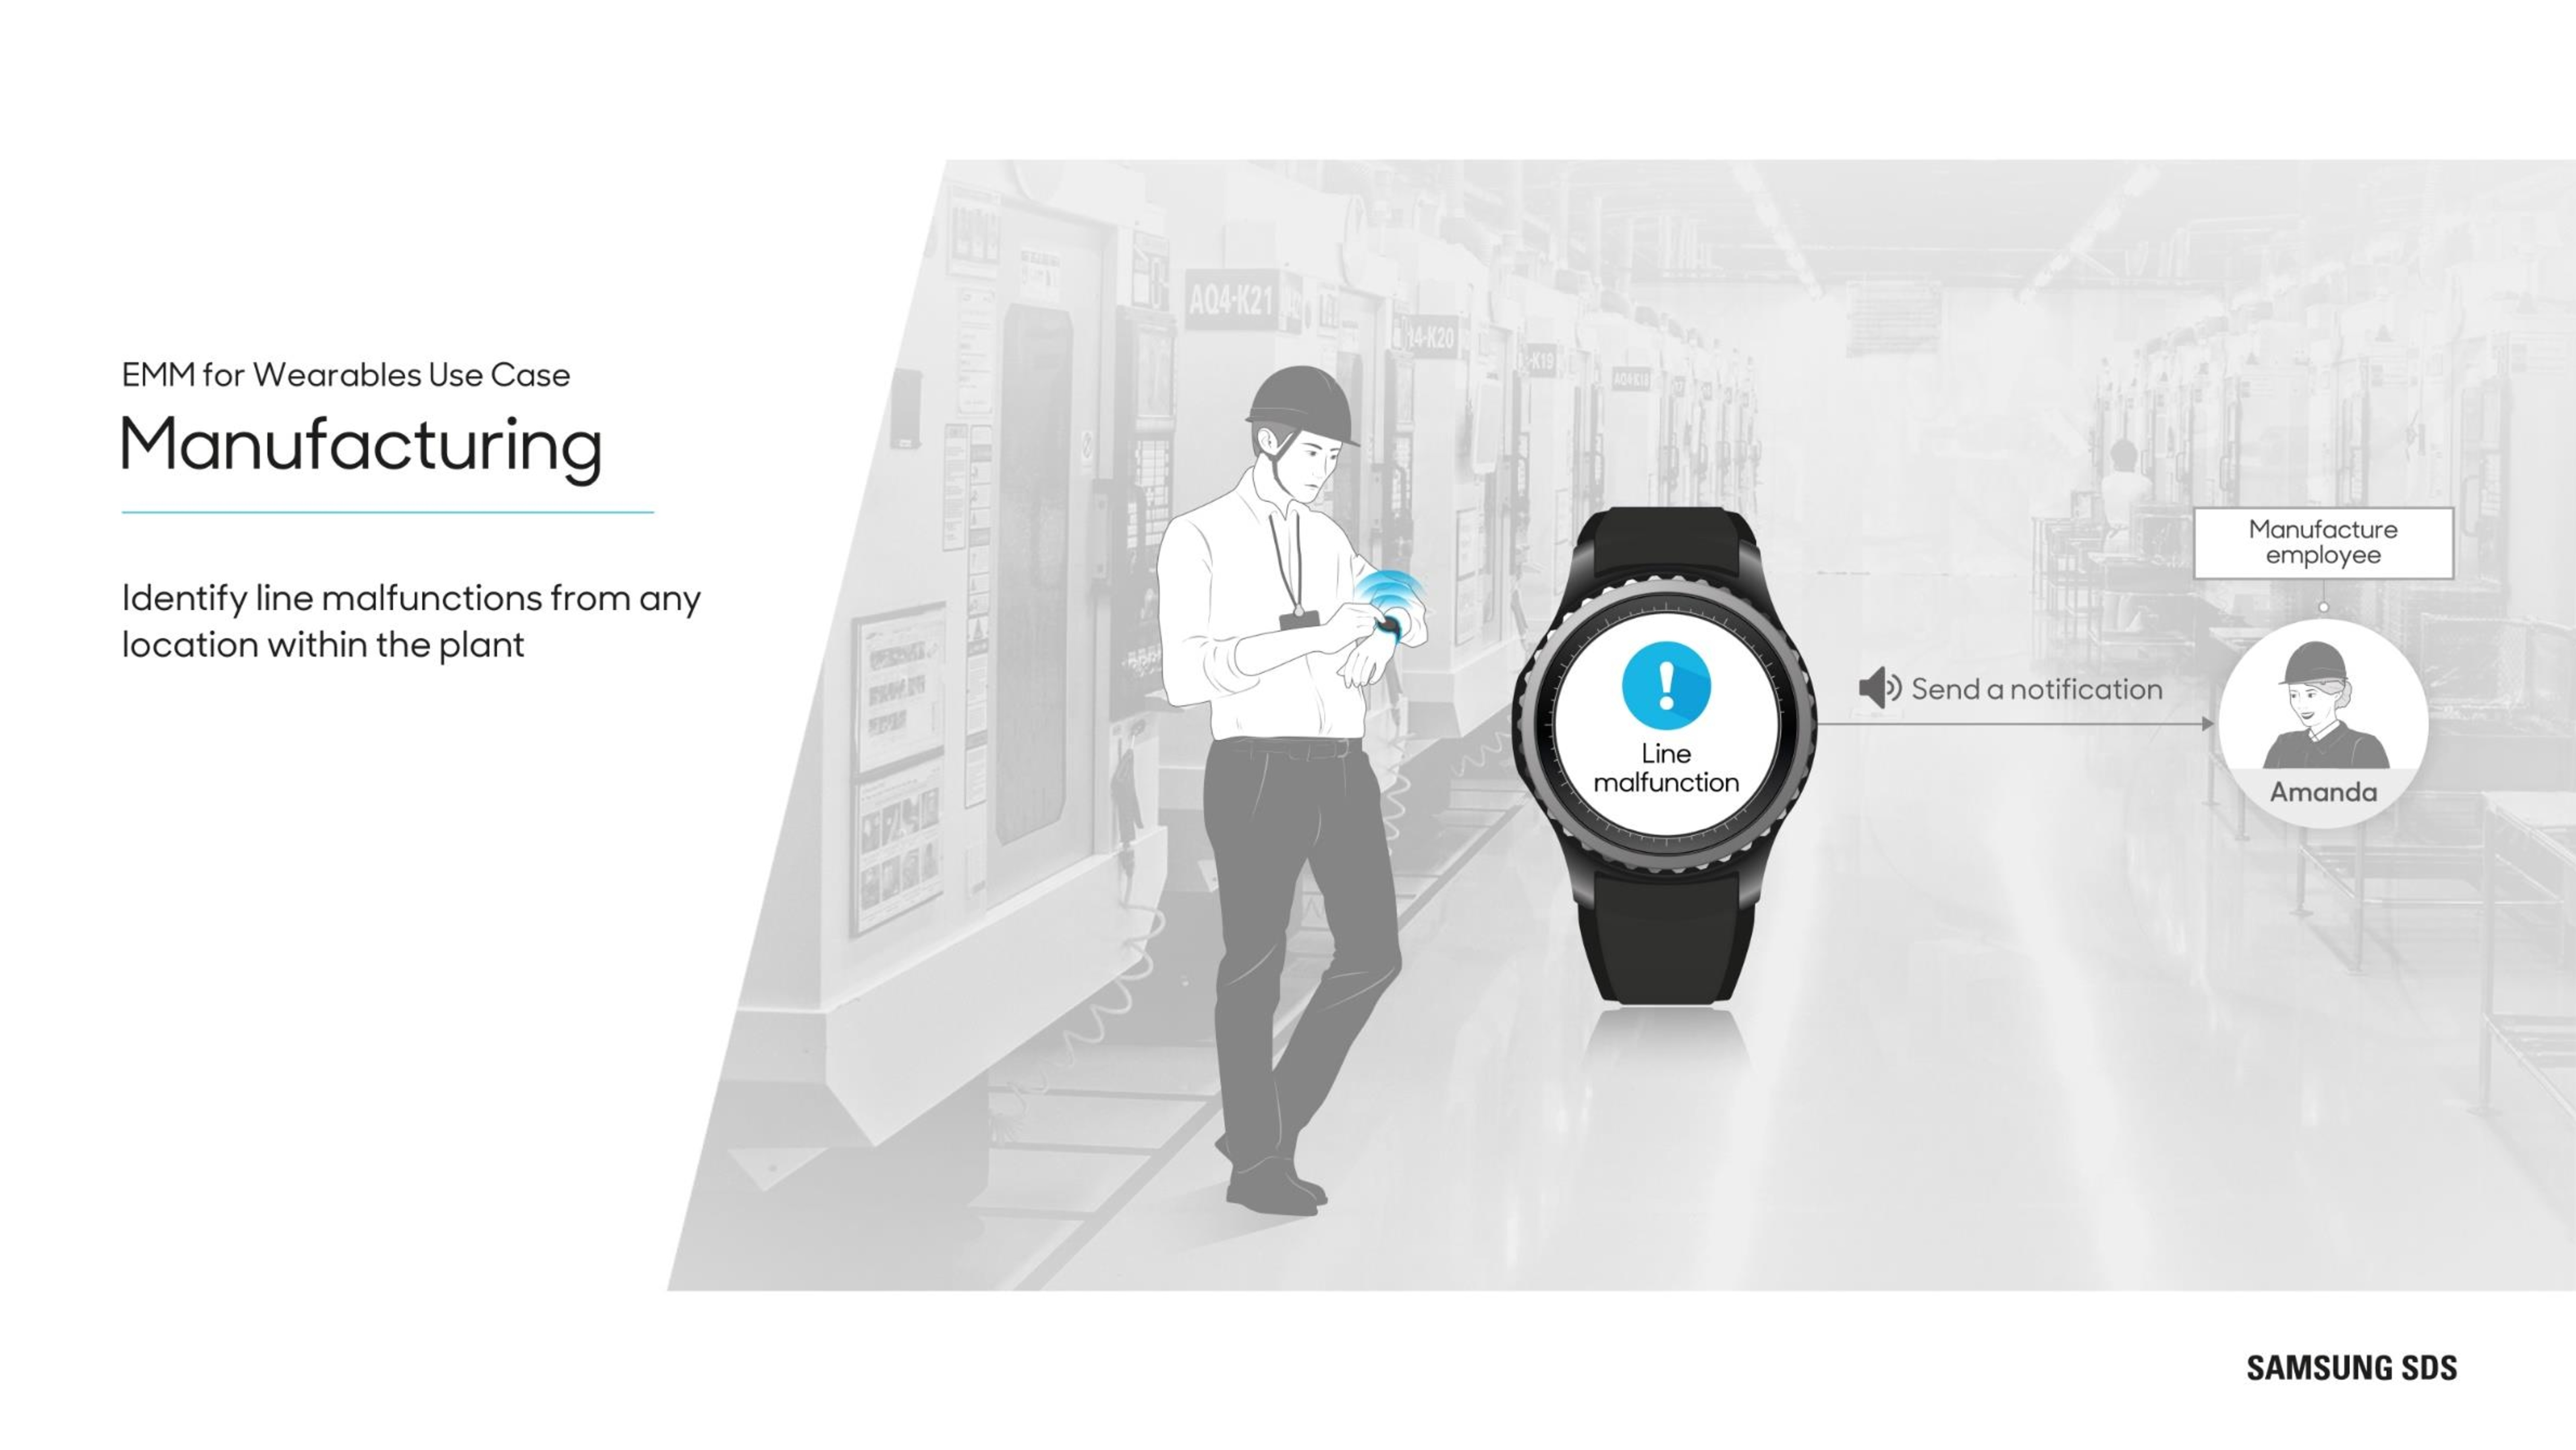 Wearables in Manufacturing Identify line malfunctions from any location within the plant.